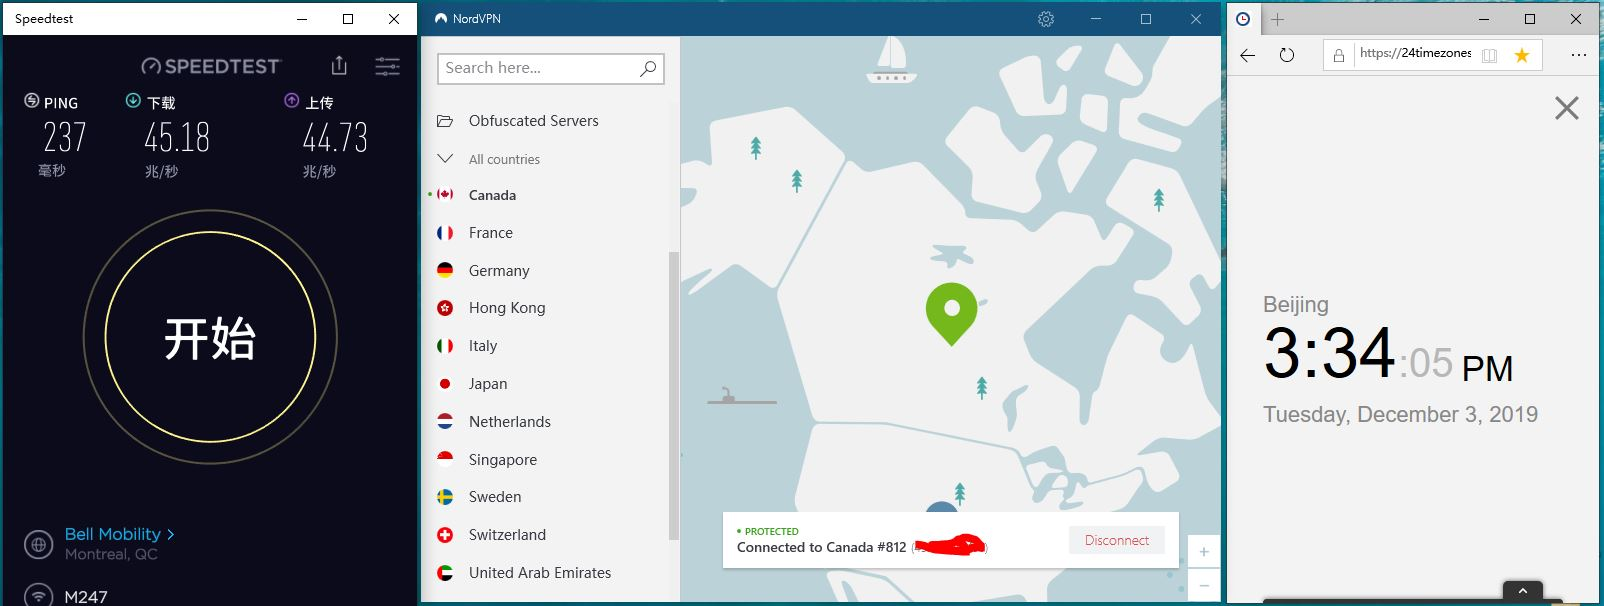 Windows NordVPN Canada - 812 中国VPN翻墙 科学上网 SpeedTest测试-20191203